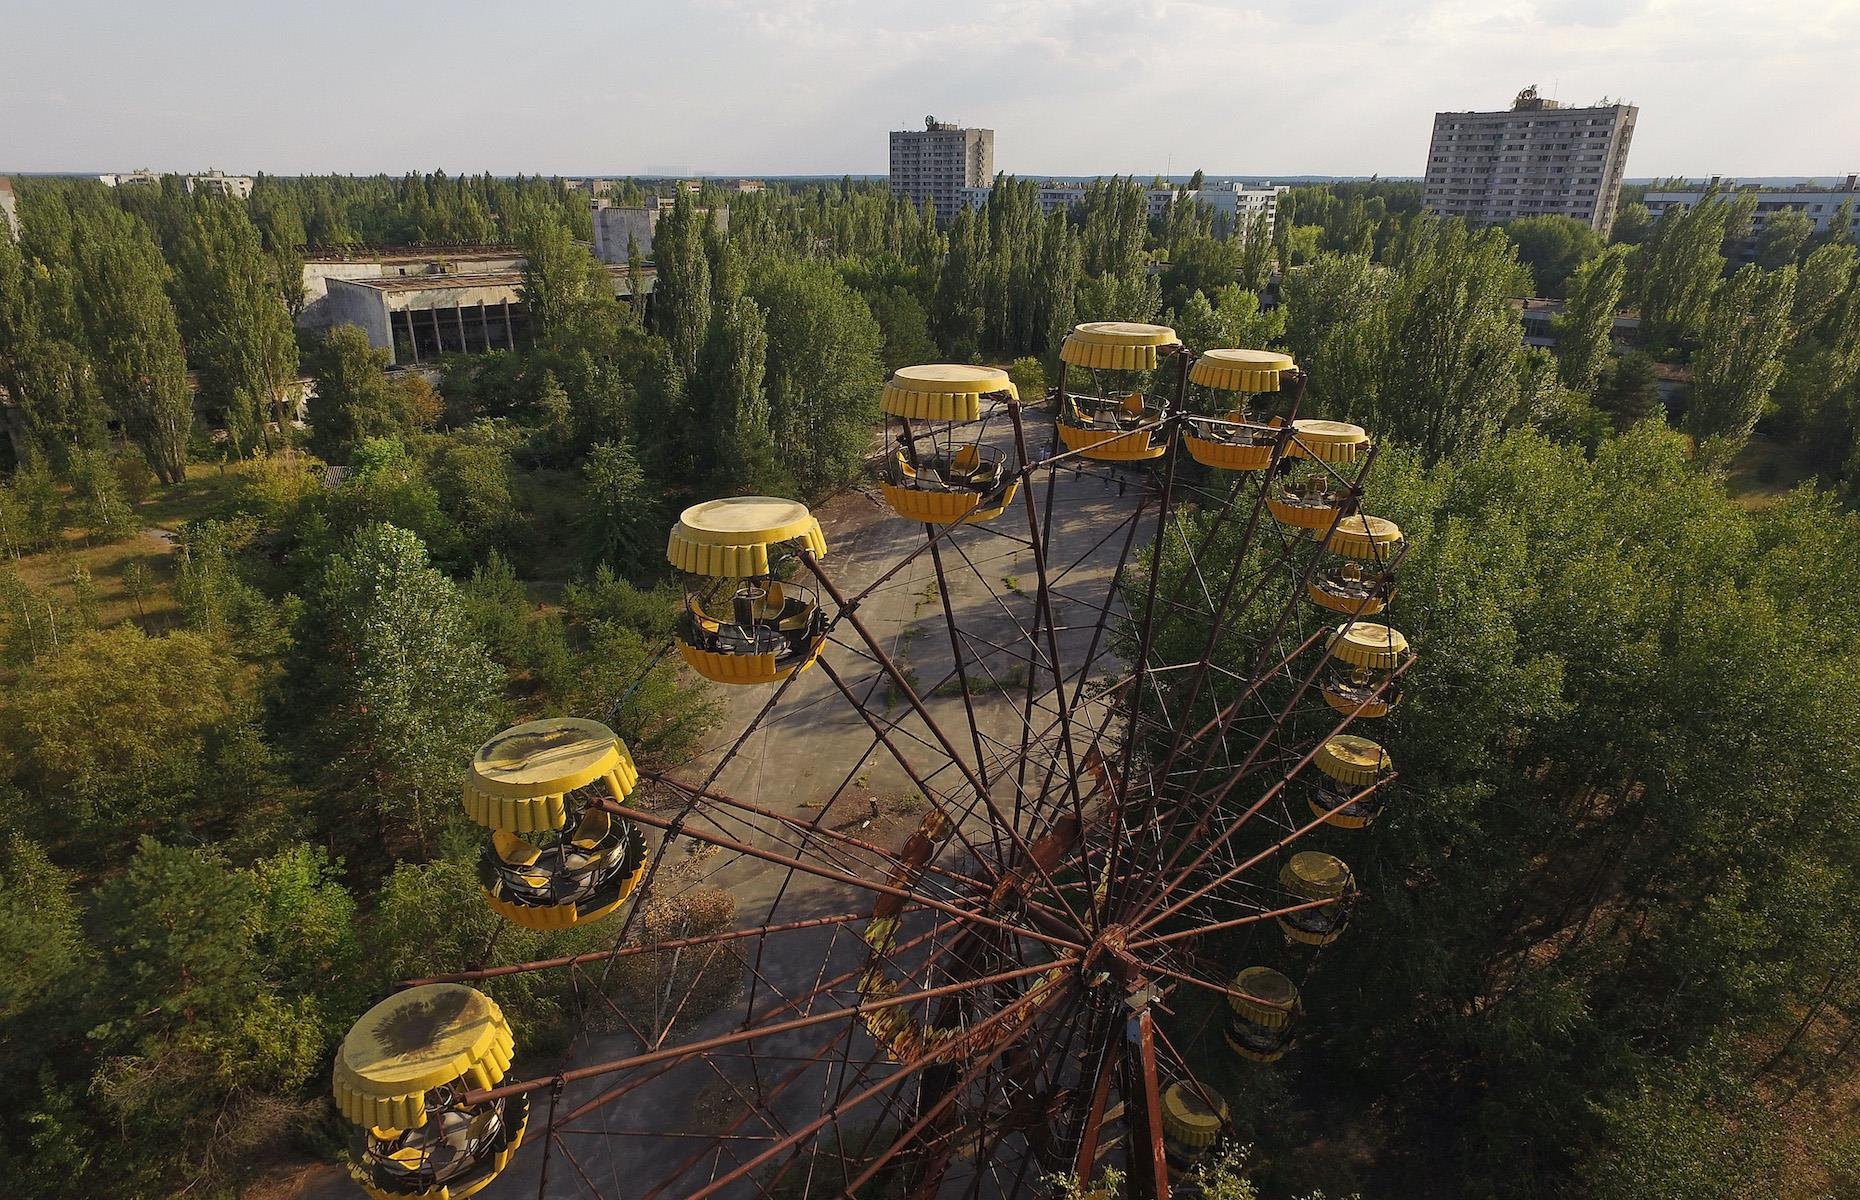 Slide 37 of 52: The Ukrainian government designated Chernobyl an official tourist attraction in 2019 after the exclusion zone was deemed safe to visit for tourists.Access is still strictly regulated by the governmentand can only be explored on guided tours. Haunting sights include the deserted school, where books and paper lie scattered on the floor of the classrooms, anda decaying amusement park. The Ferris wheel is a moving symbol of joy extinguished – it was supposed to open four days after the explosion, but never welcomed any guests. See more eerie images of abandoned amusement parks around the world.